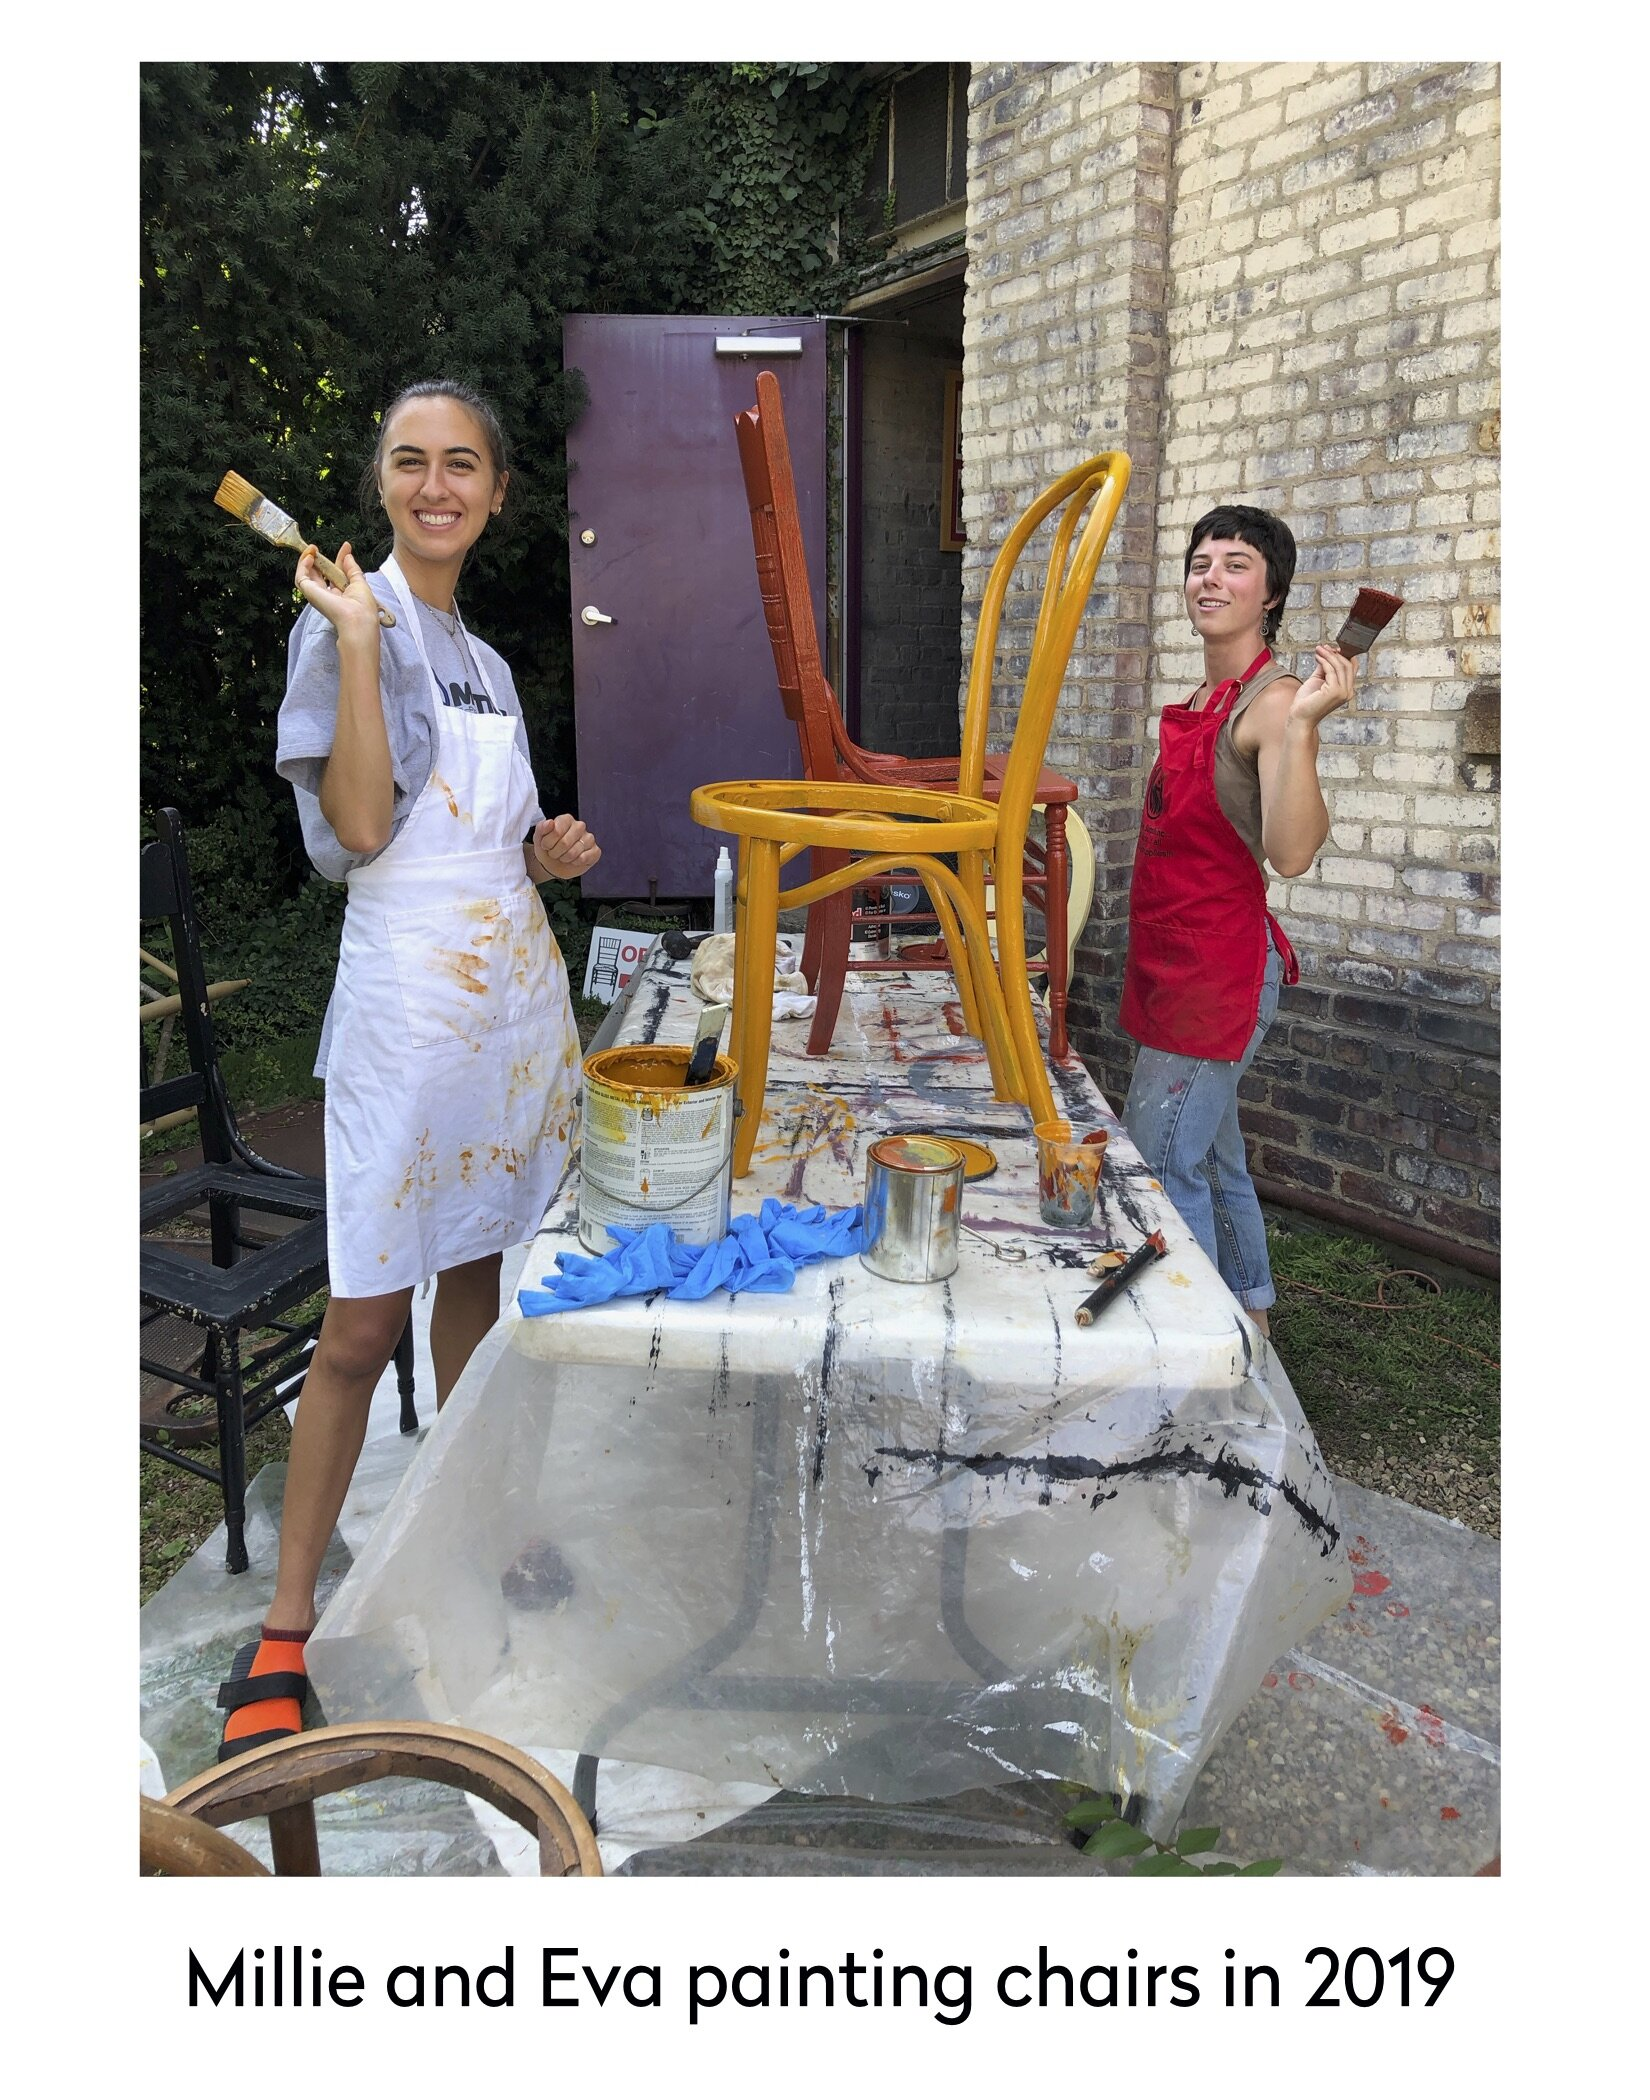 millie and eva painting chairs 2019.jpg